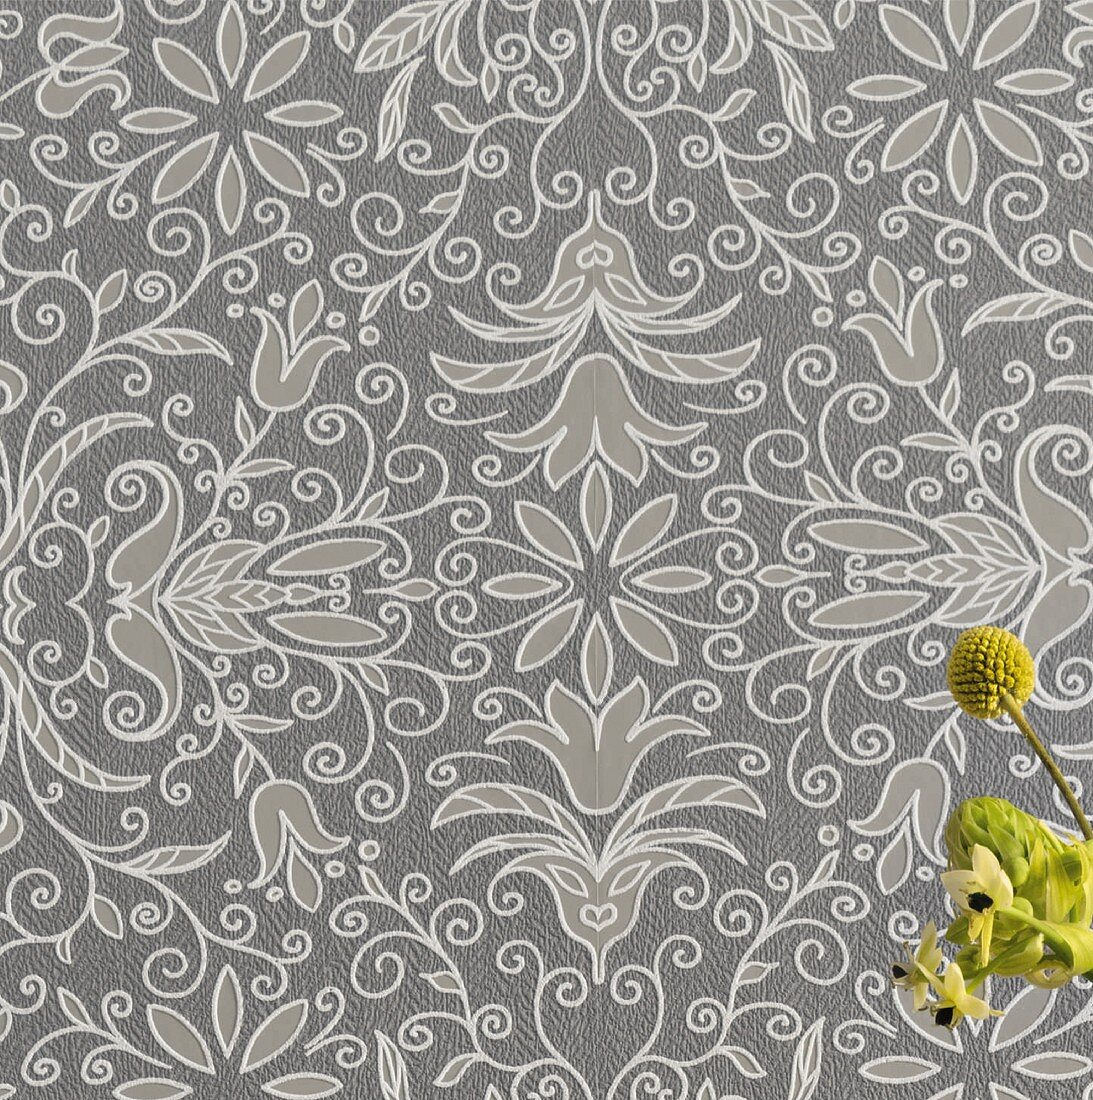 Non-woven wallpaper with a floral pattern with a relief effect in shades of grey and nostalgic Scandinavian flair